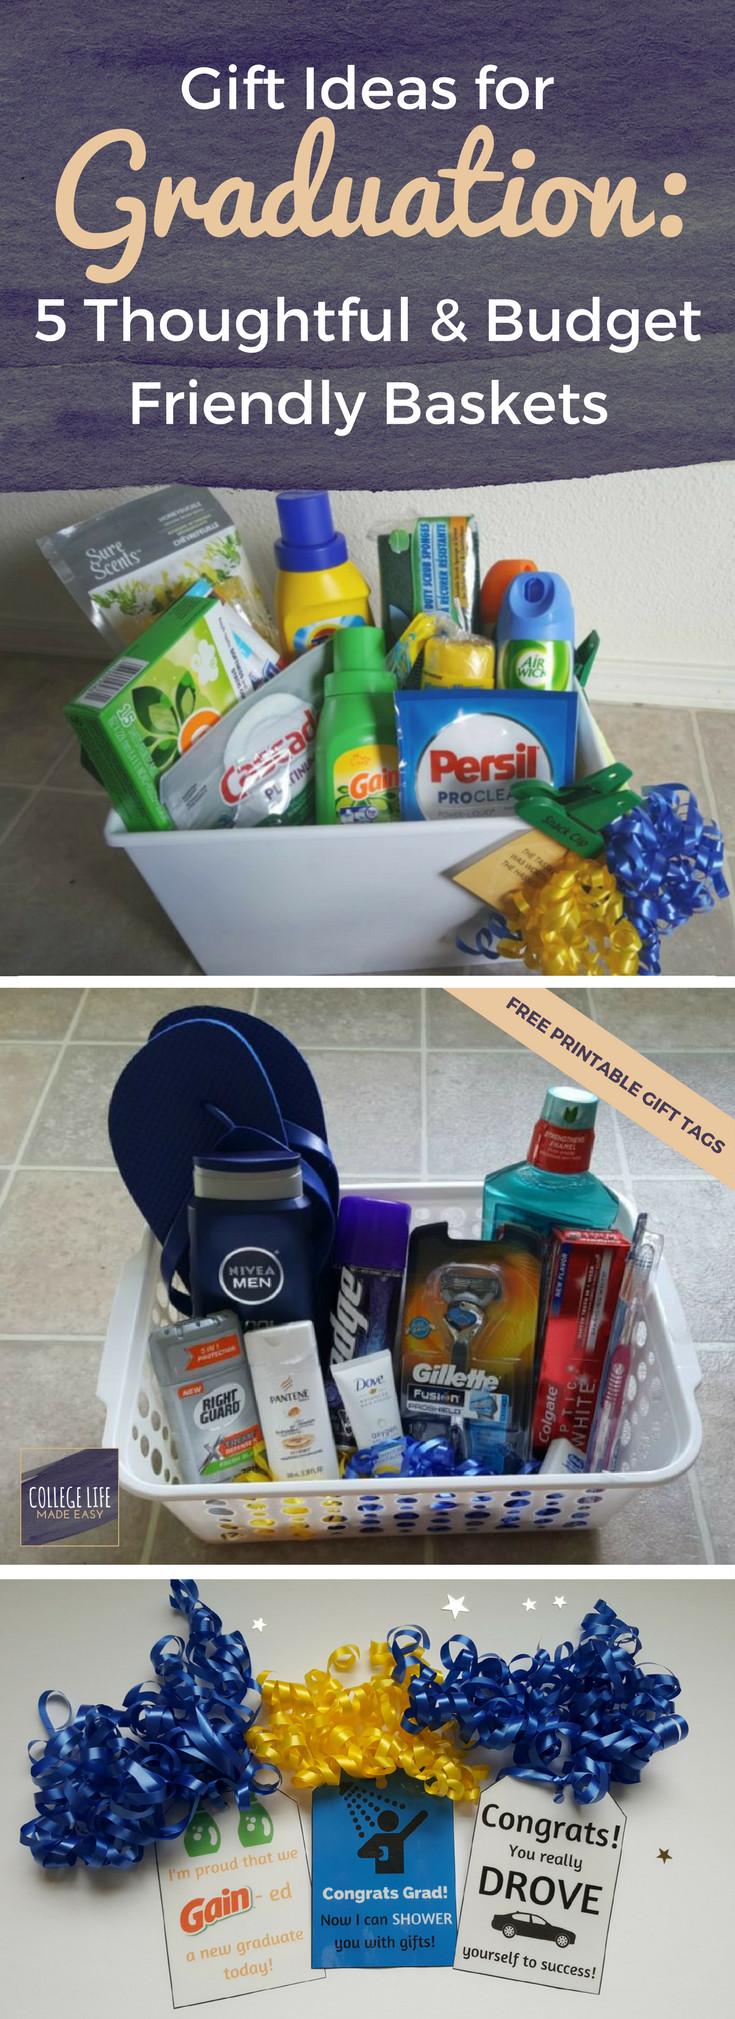 Diy Graduation Gift Ideas For Him  5 DIY Going Away to College Gift Basket Ideas for Boys